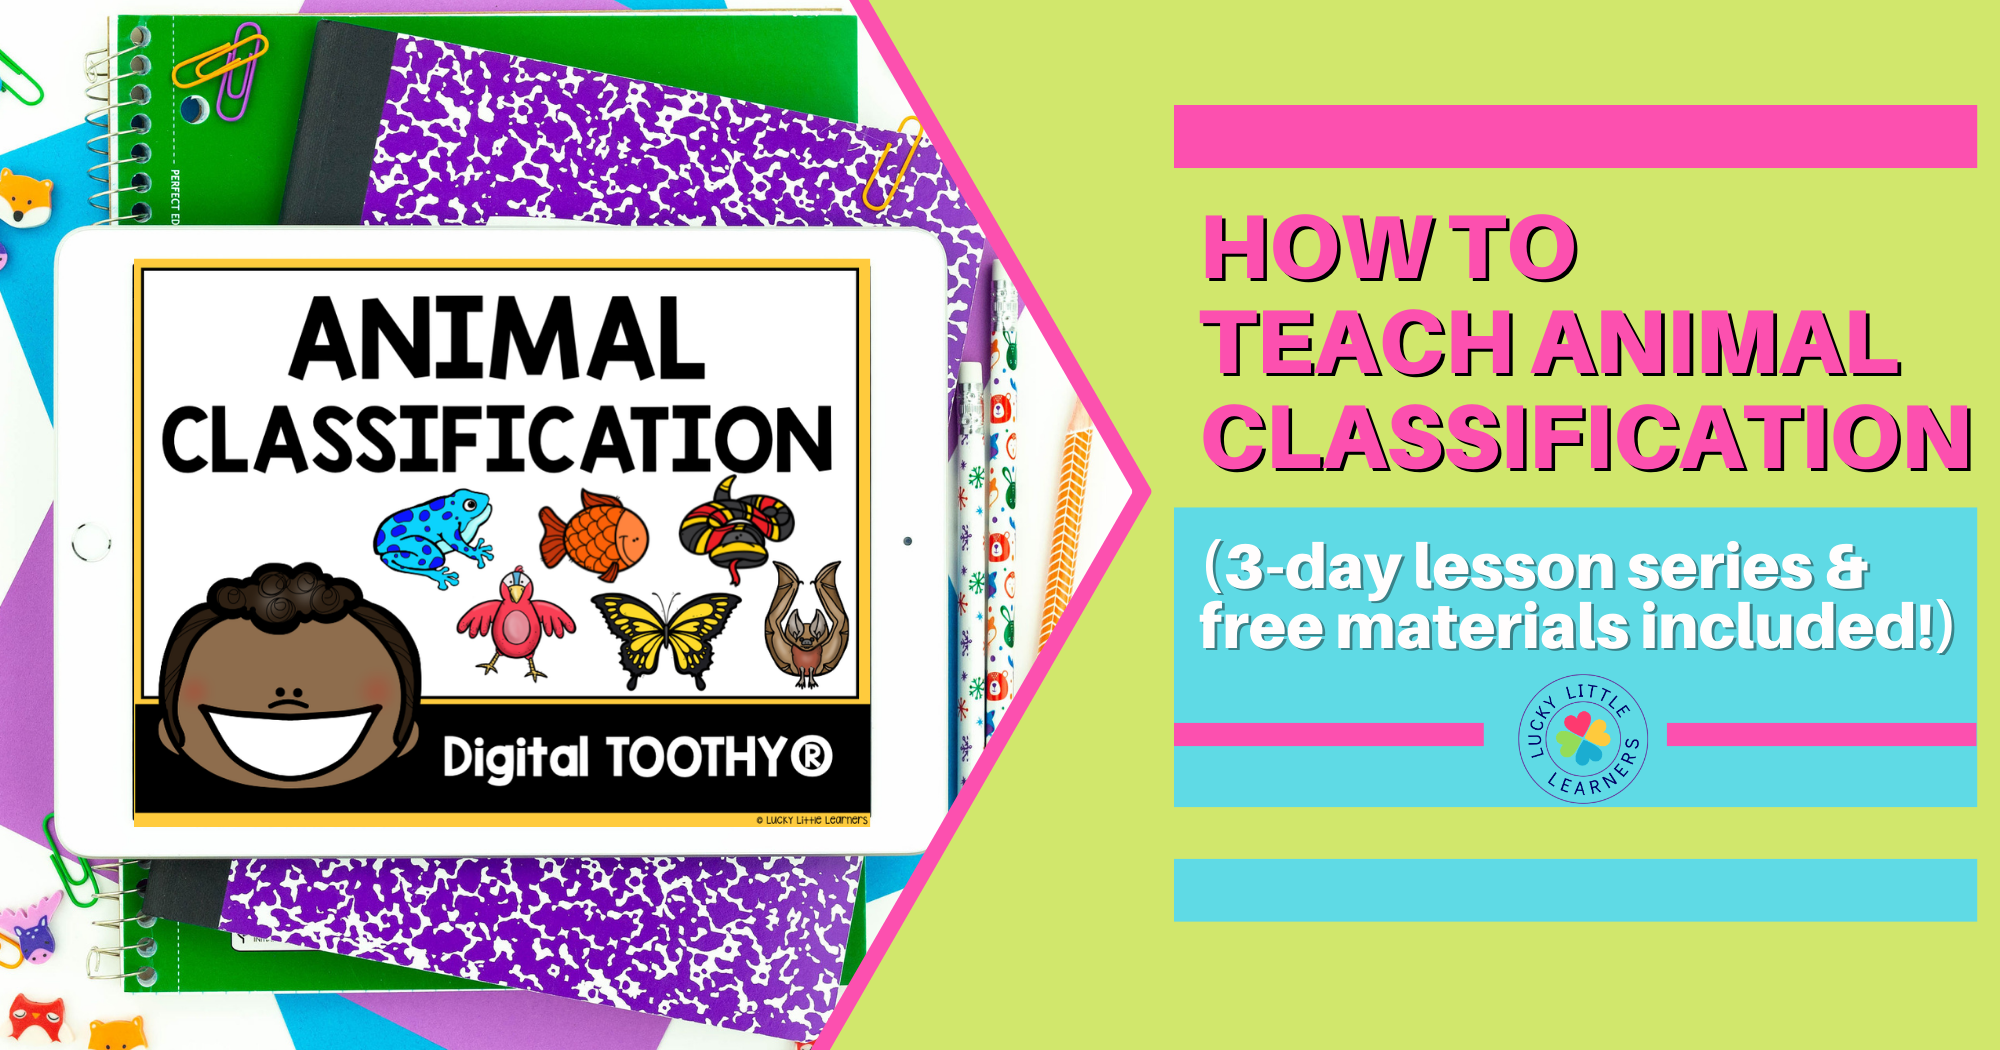 Animal Classification 3-Day Lesson Plan (Free Materials Included)